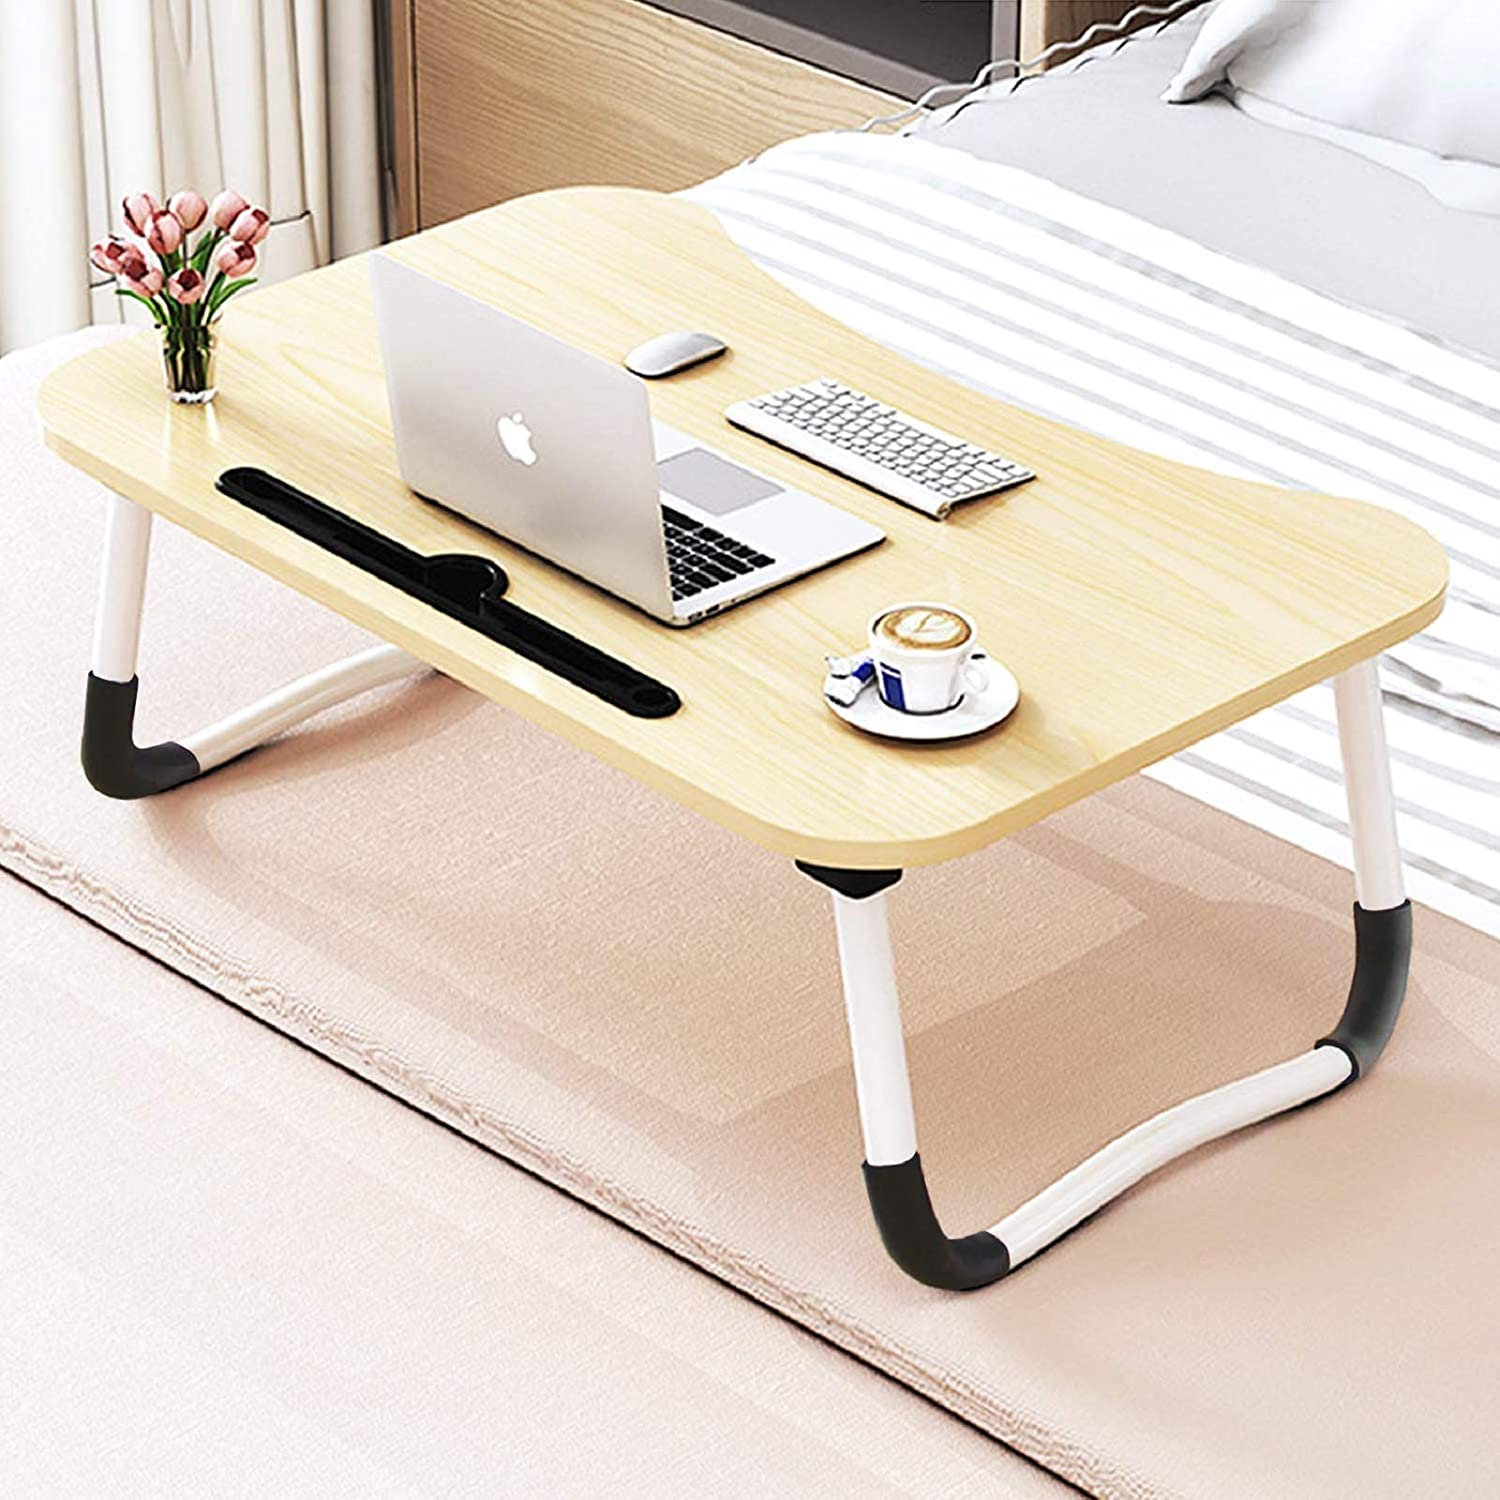 Amazon Com Foldable Bed Tray Lap Desk Portable Lap Desk With Phone Slots Notebook Table Dorm Desk Small Desk Folding Small Dormitory Table Perfect For Watching Movie On Bed Or As Personal Dinning